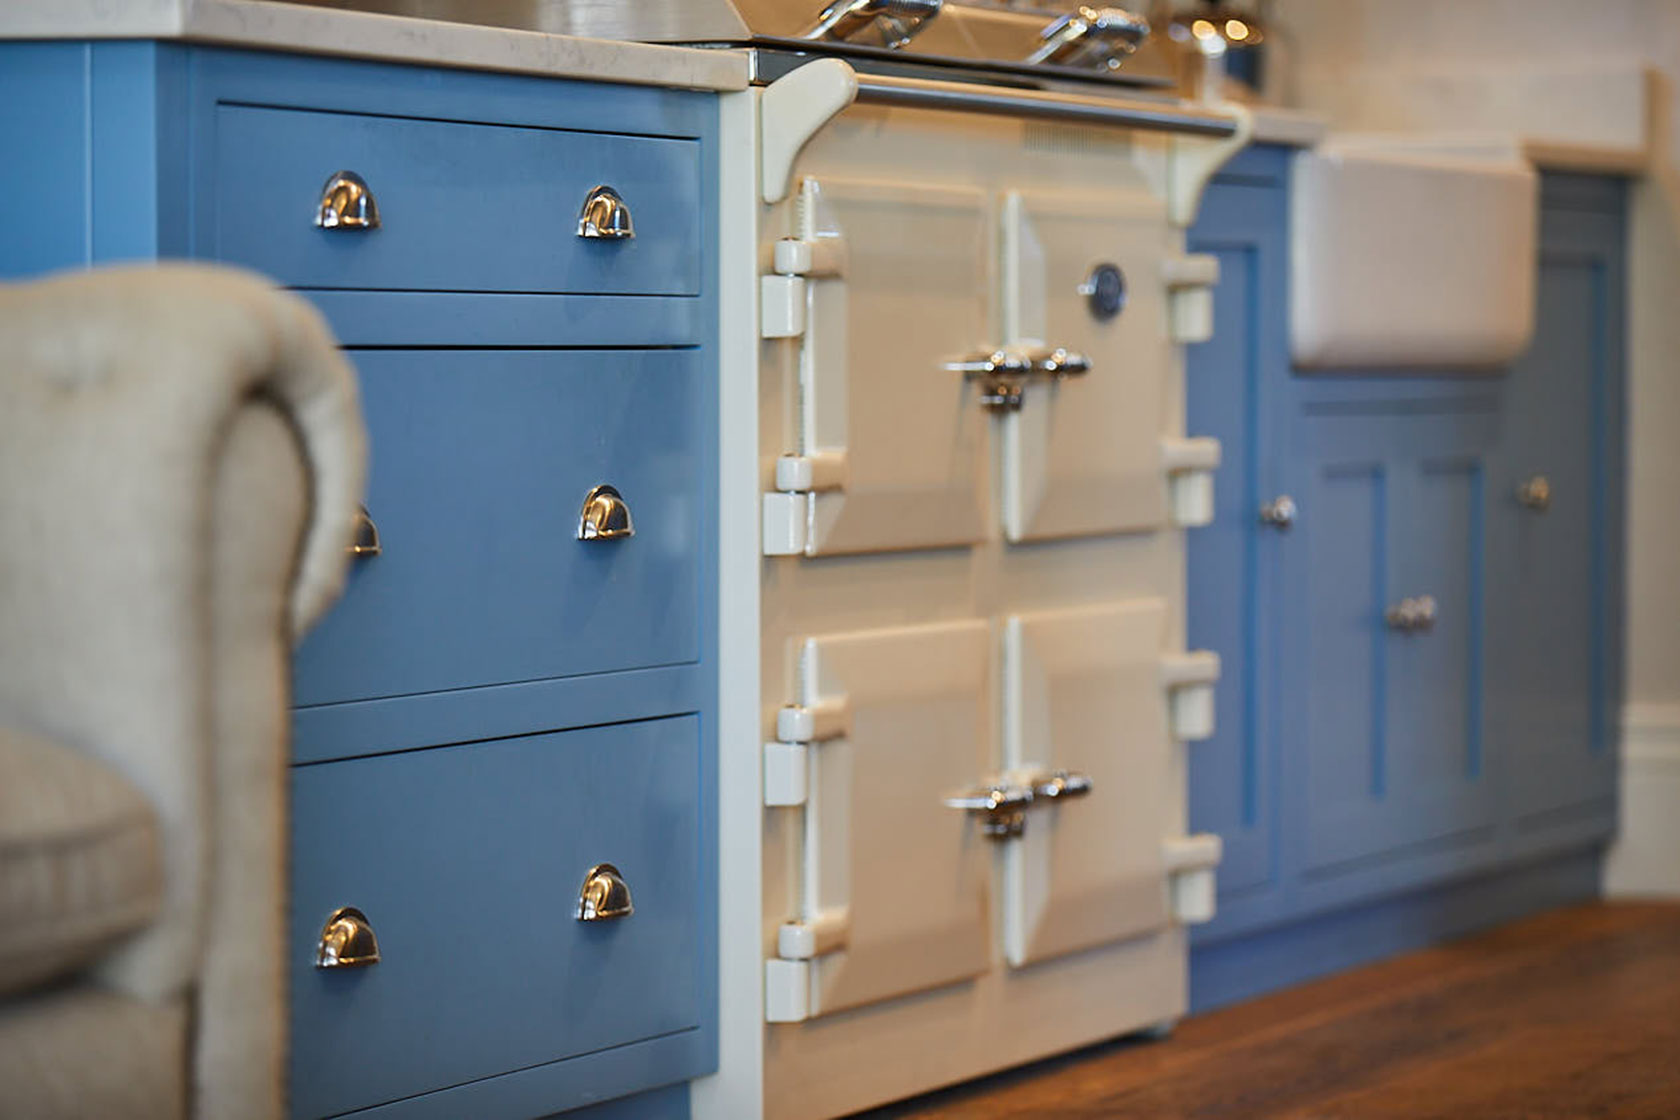 Cream Everhot flush with light blue shaker cabinets